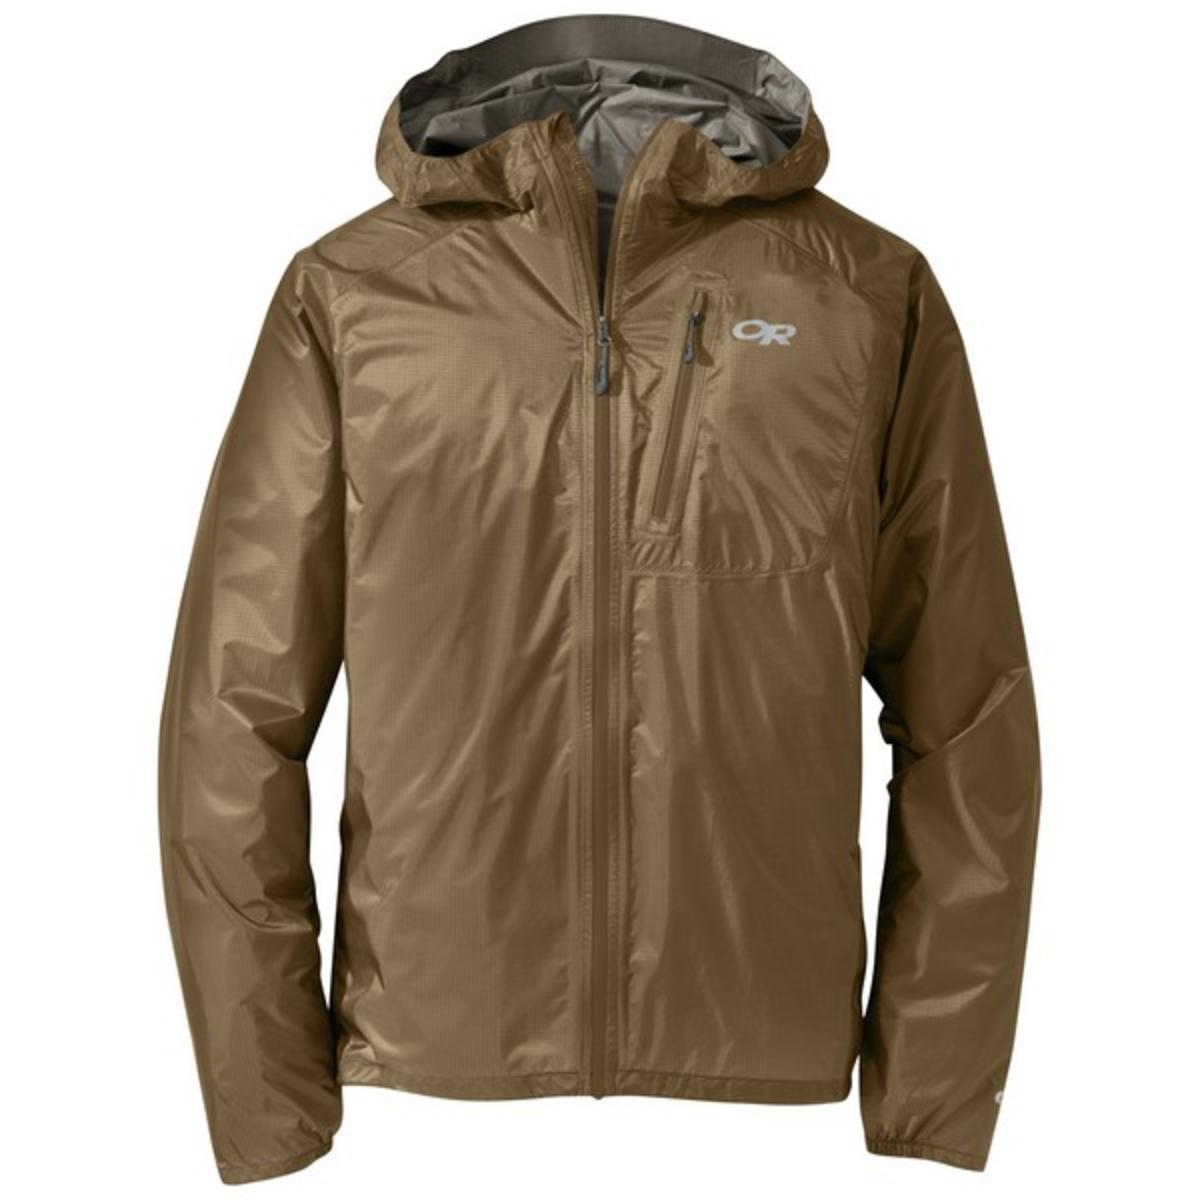 Outdoor Research Men's Helium II Jacket